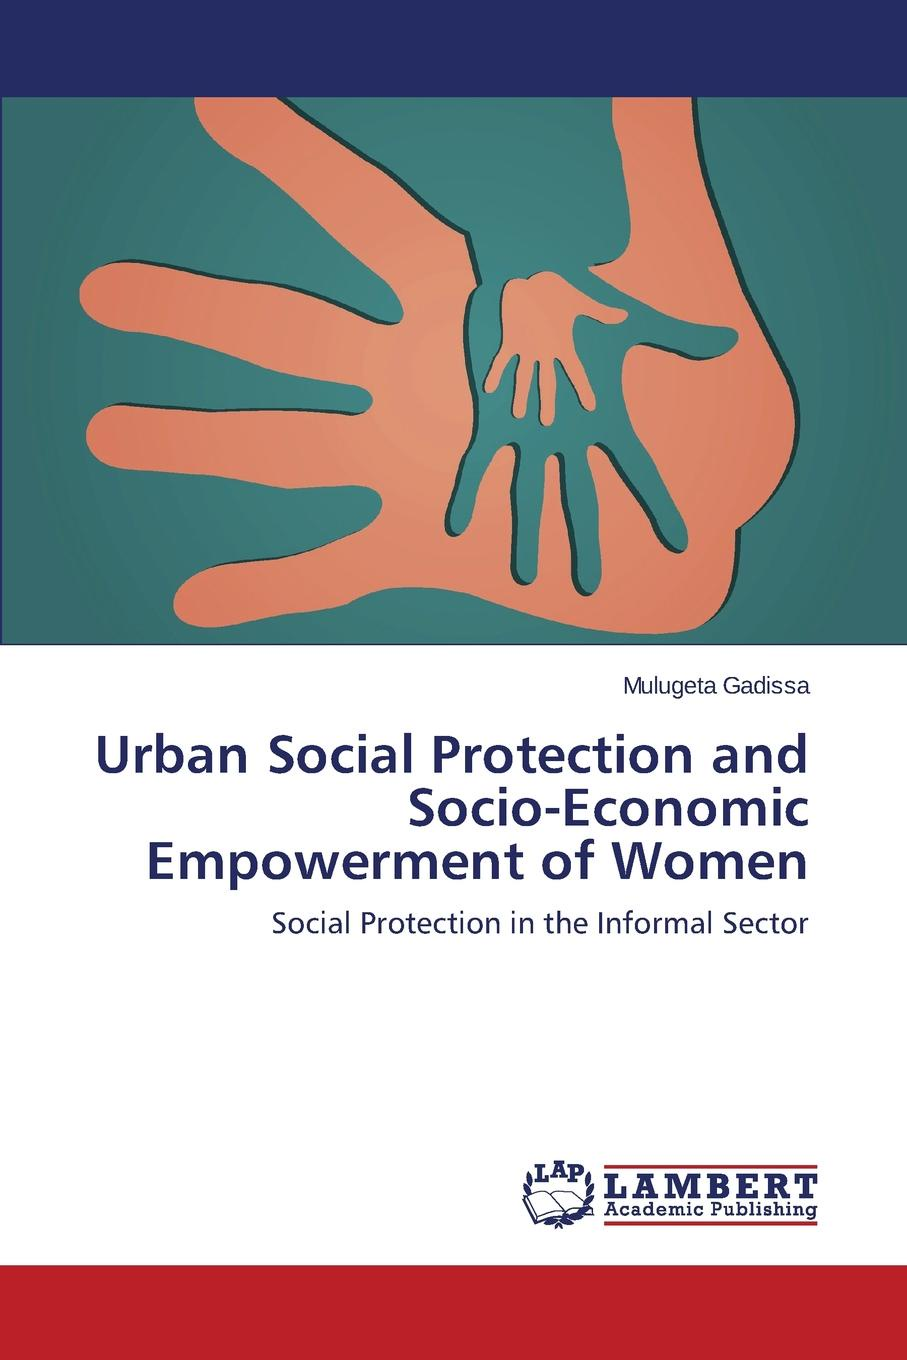 Gadissa Mulugeta Urban Social Protection and Socio-Economic Empowerment of Women